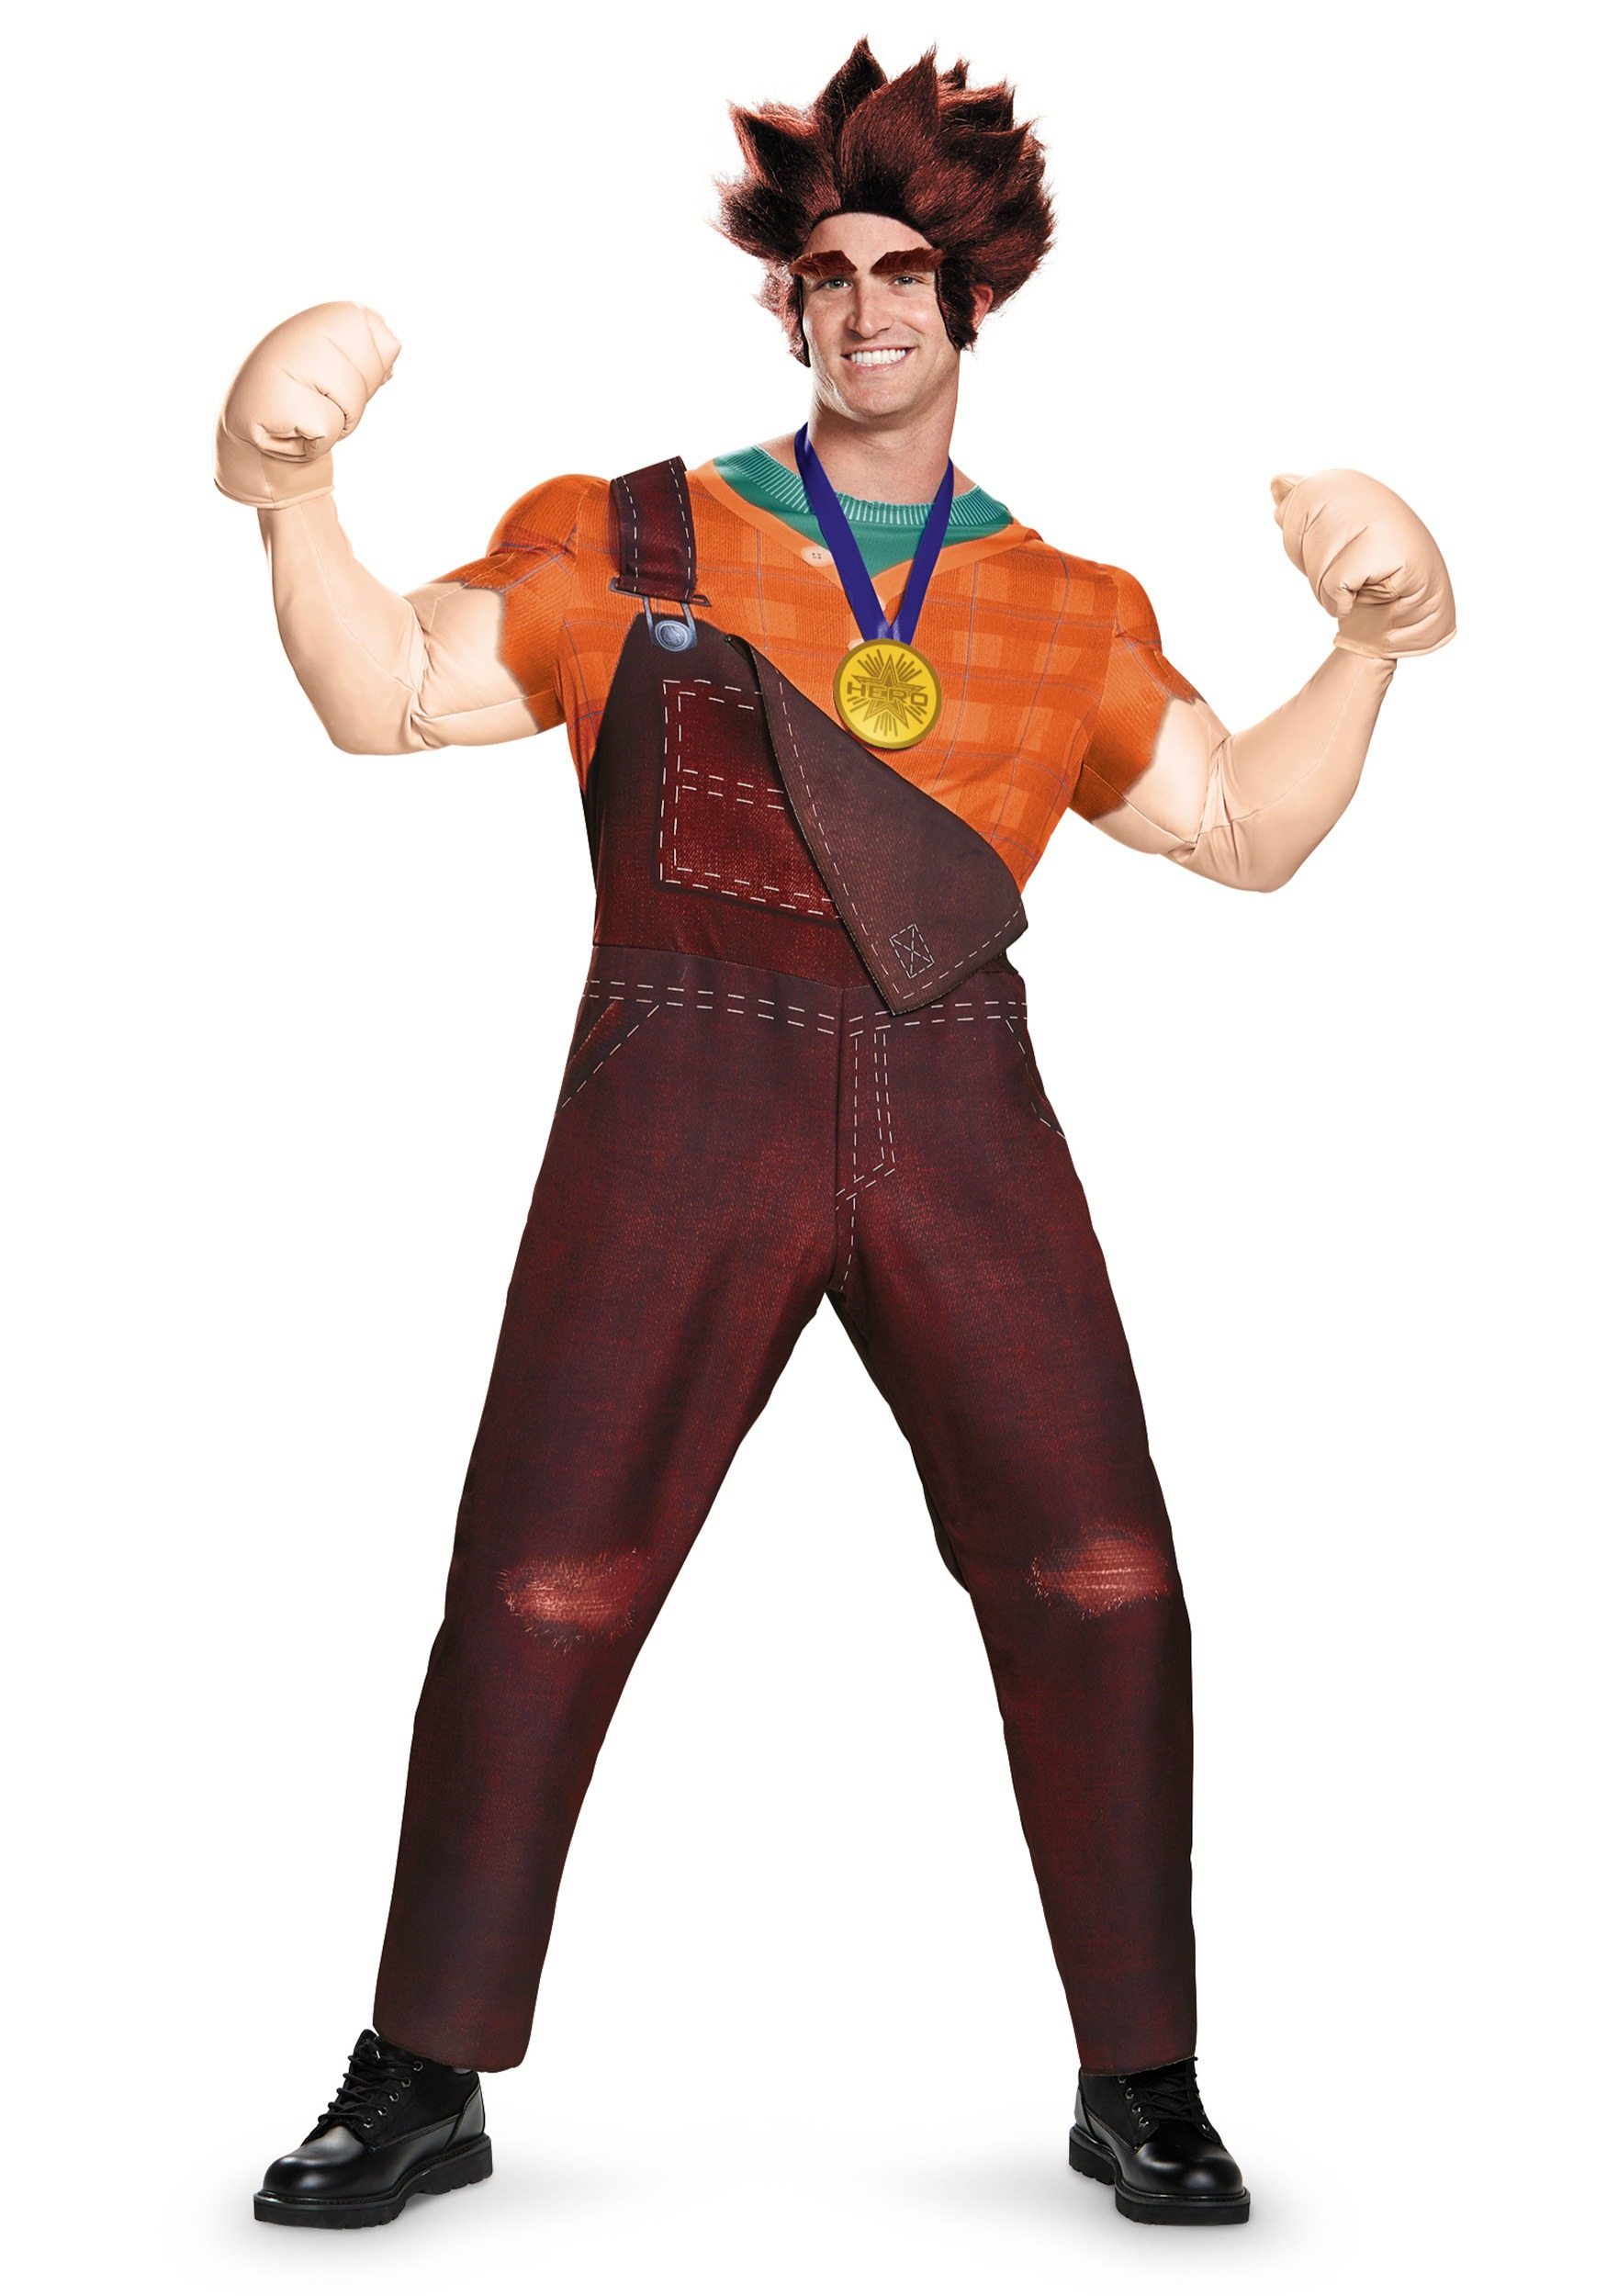 Adult Deluxe Wreck It Ralph Costume - Costume